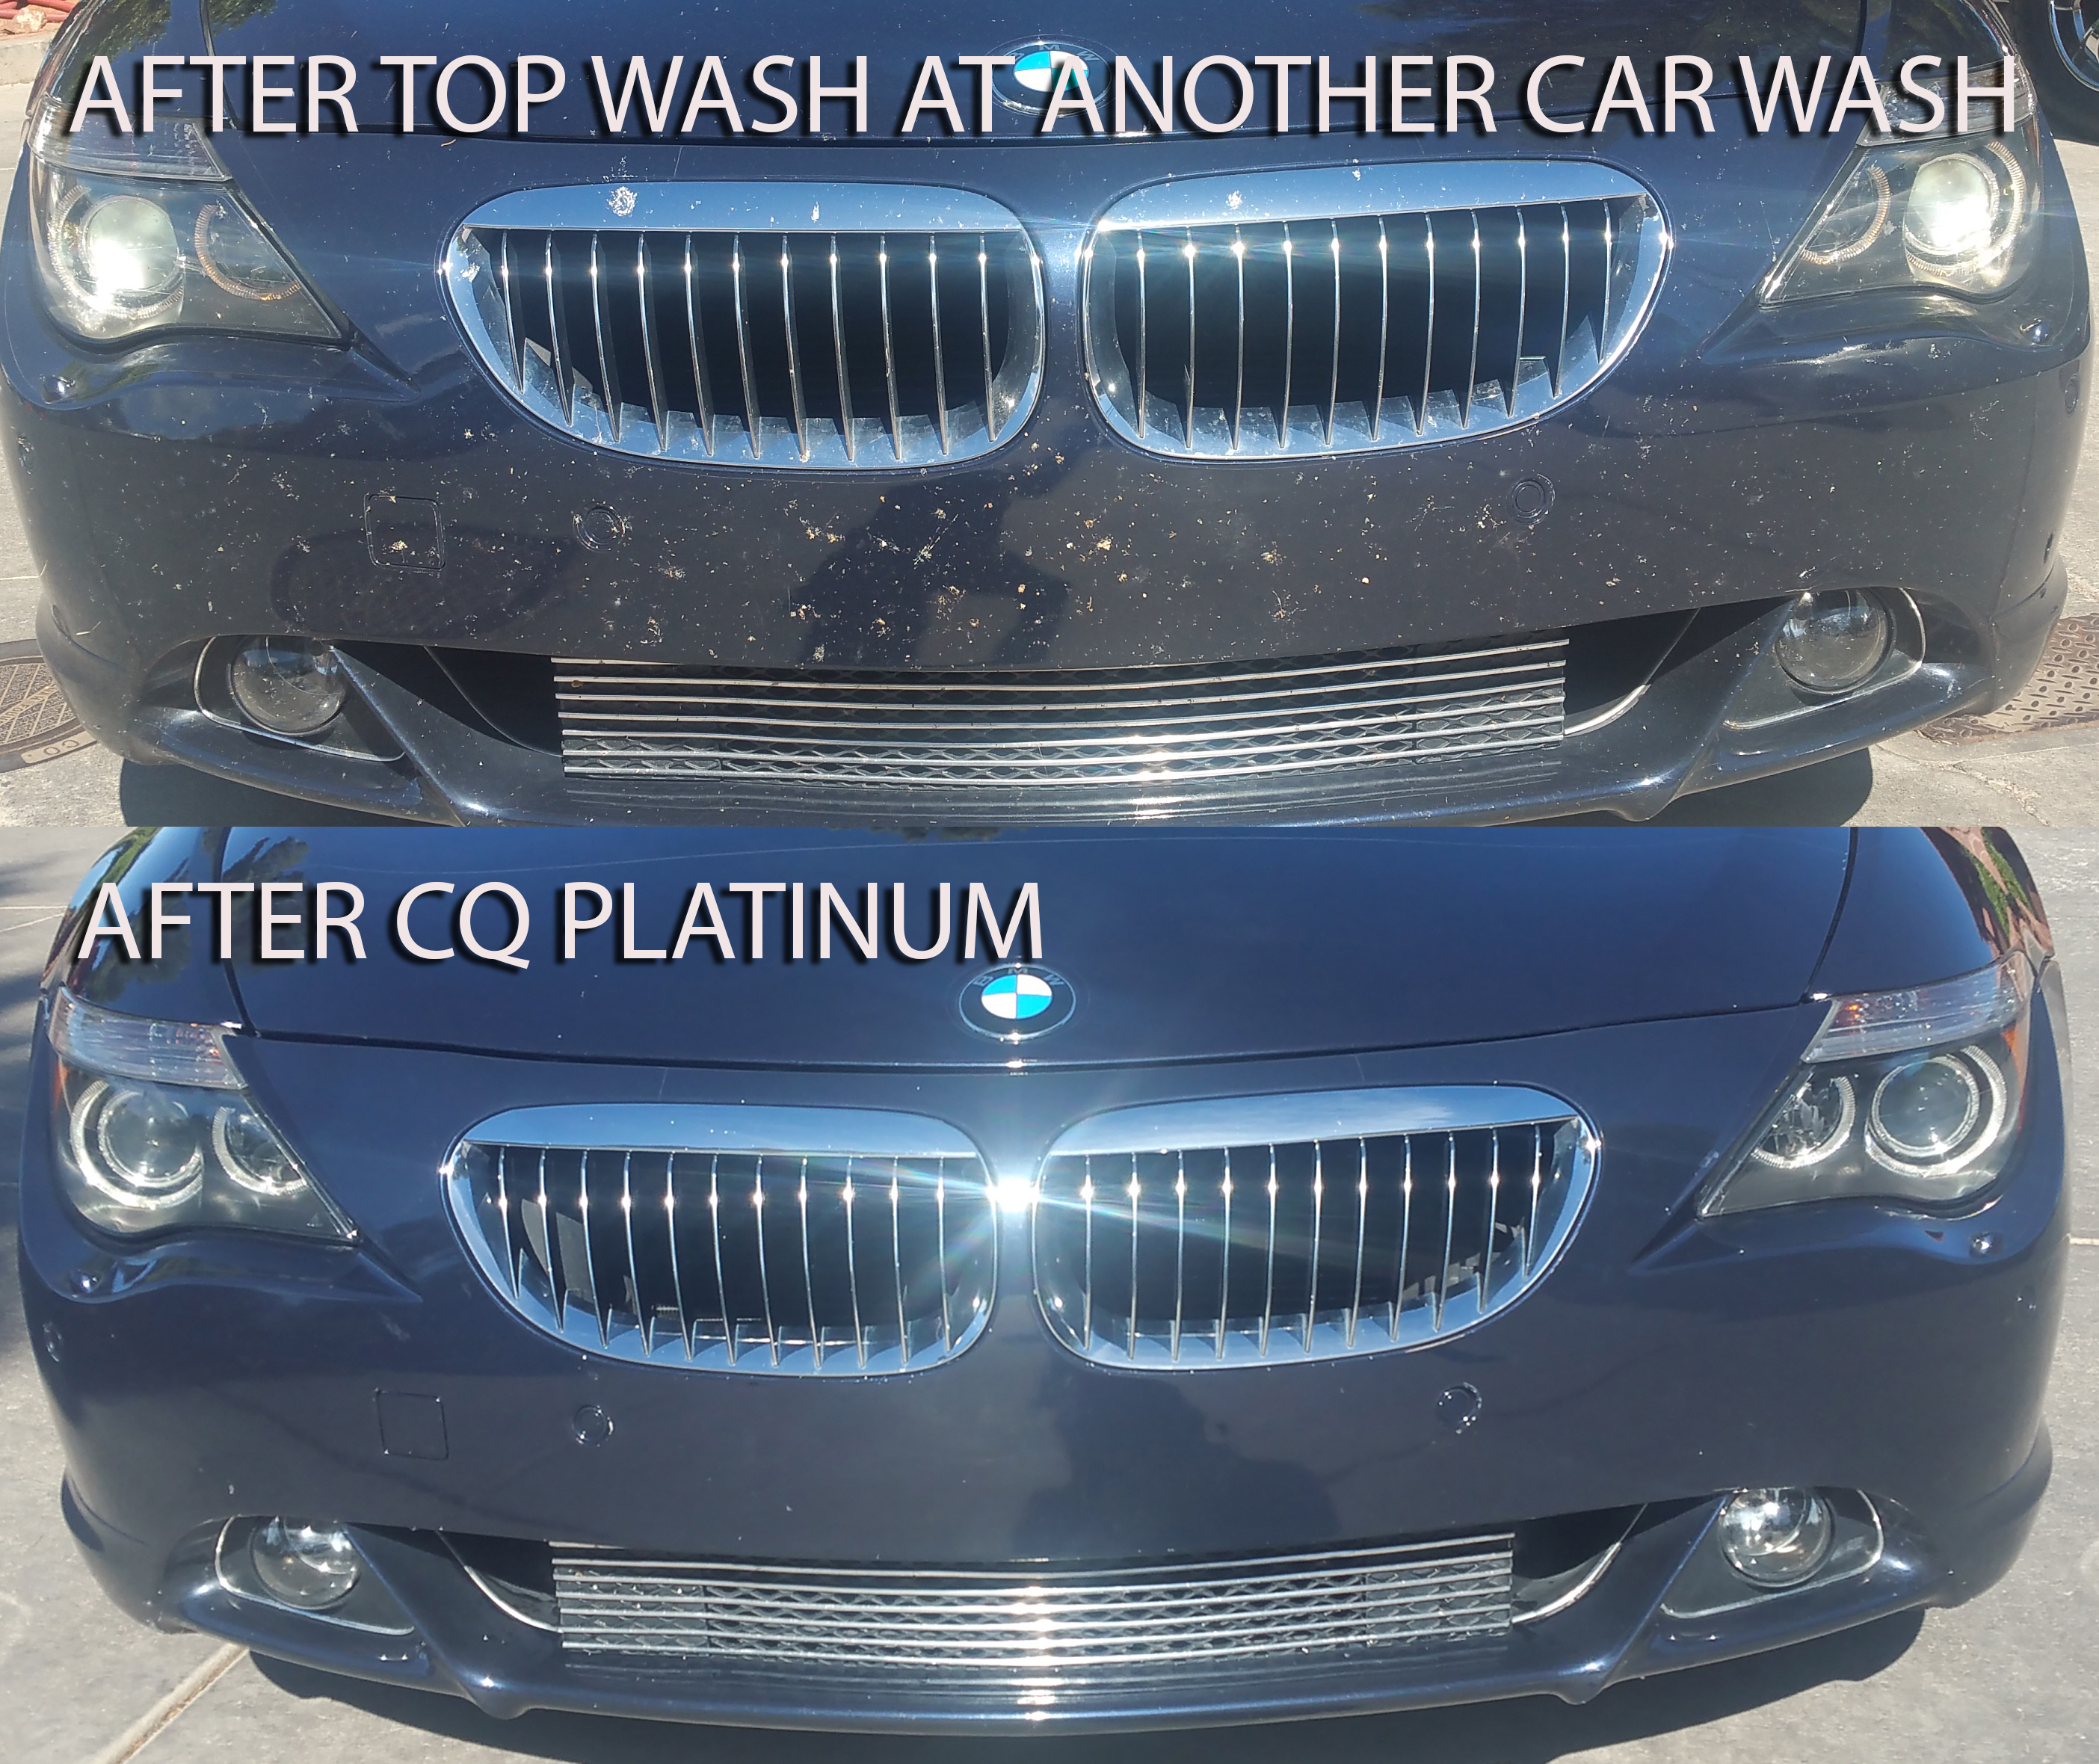 Sedona car wash cleaner quicker car wash in sedona az get the bugs off fast solutioingenieria Gallery